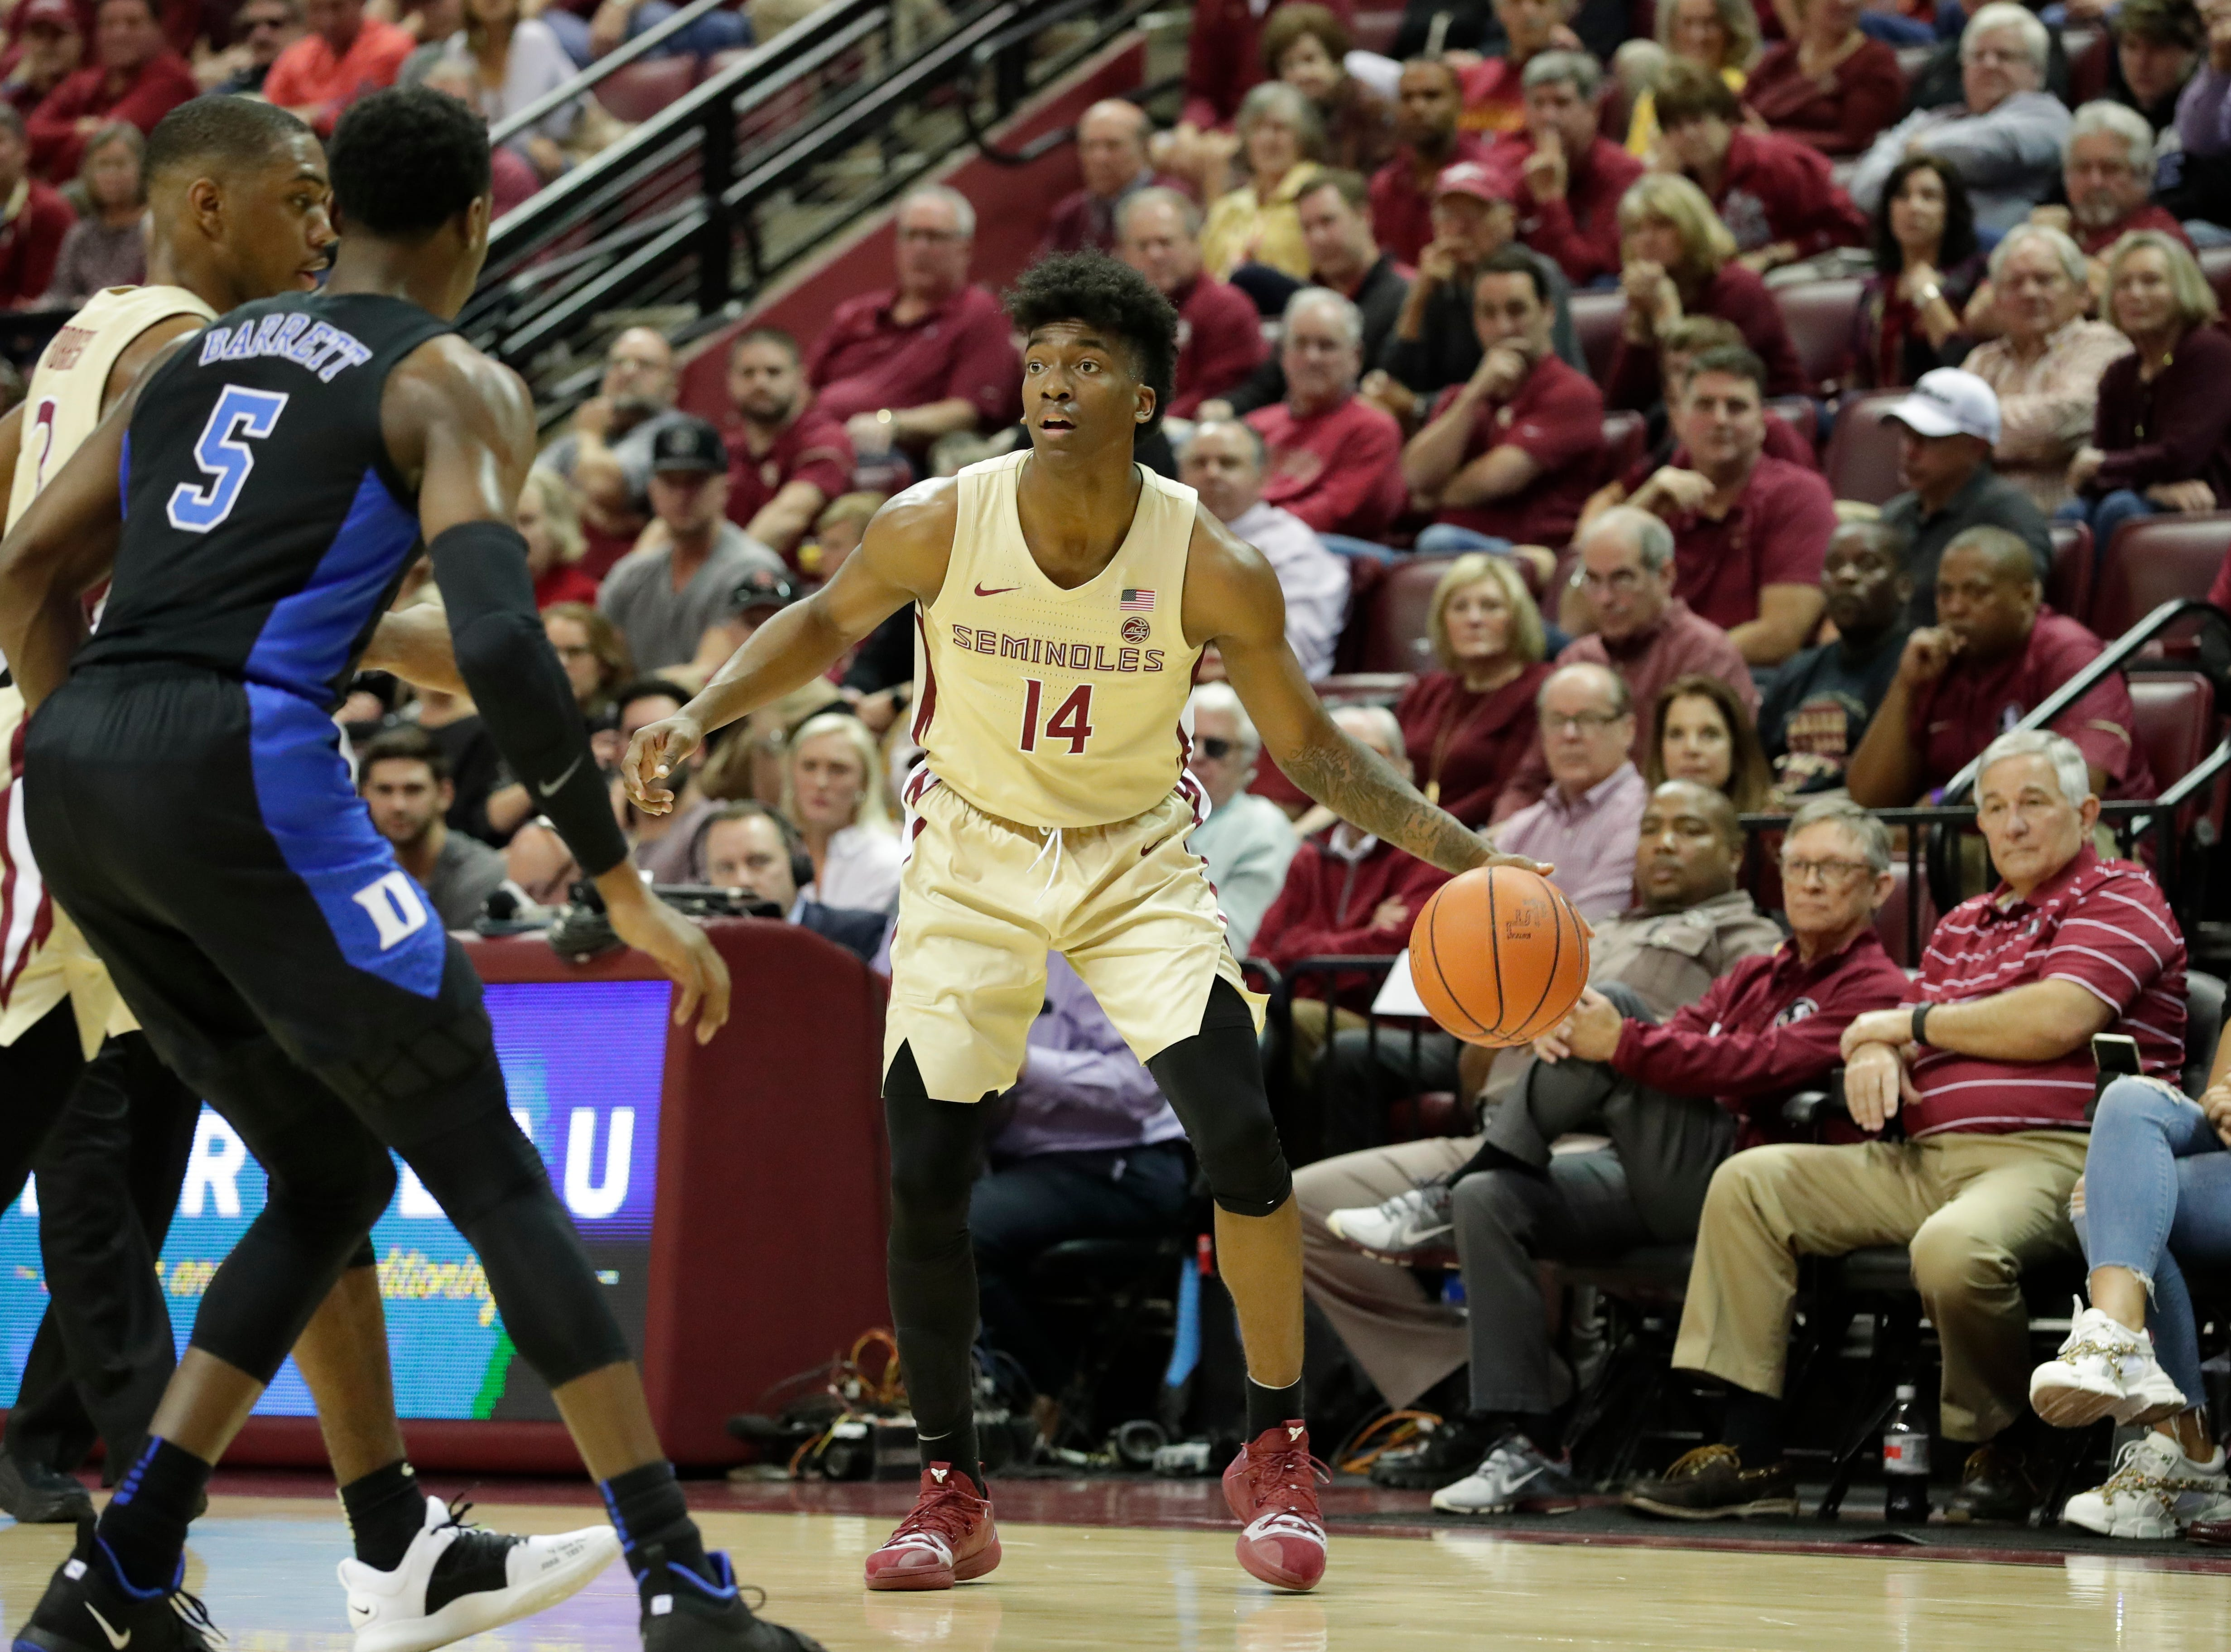 Florida State Seminoles guard Terance Mann (14) looks to pass to an open teammate. Ranked 13 in the ACC, the Florida State Seminoles host the number 1 team, the Duke Blue Devils, at the Tucker Civic Center, Saturday, Jan. 12, 2019.